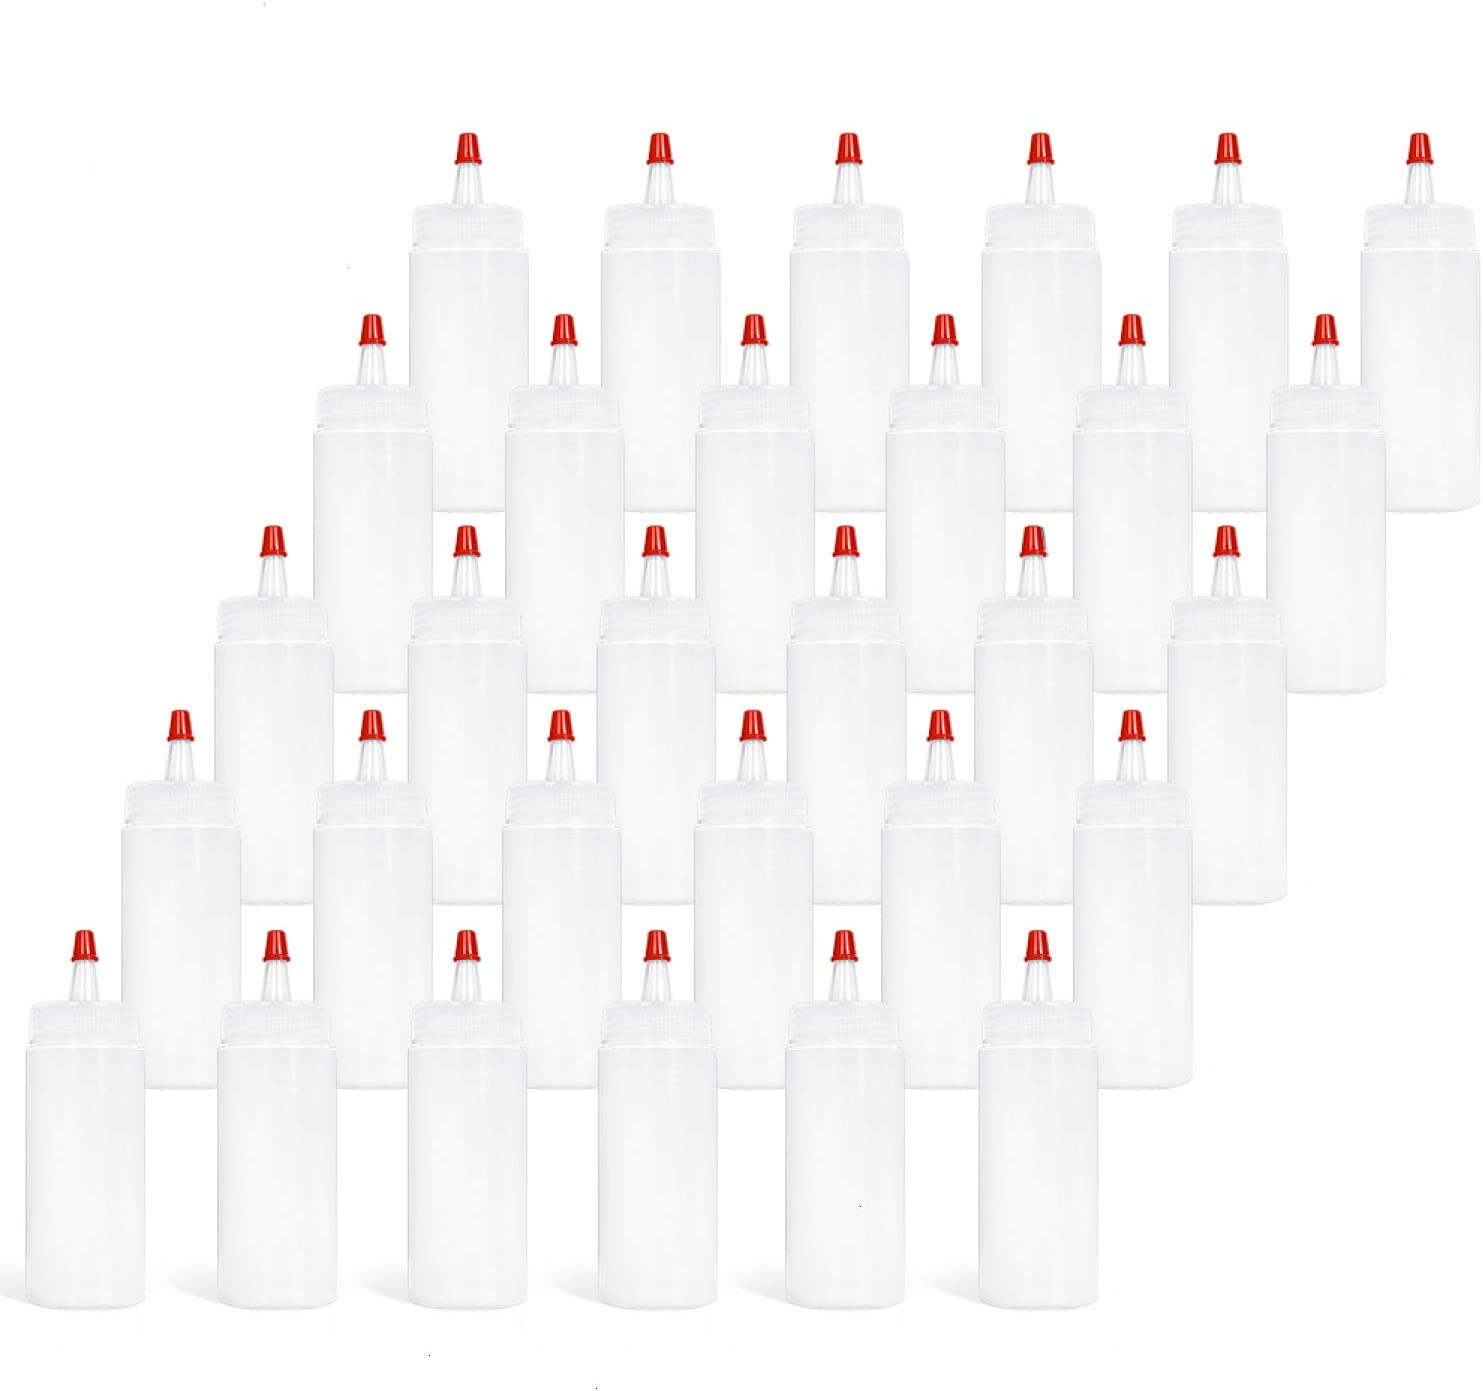 Vumdua 30 Pack Plastic Squeeze Condiment Bottles, 4 Oz Clear Squeeze Bottles with Red Tip Cap Squirt Bottle for Sauce, Ketchup, BBQ, Arts and Crafts